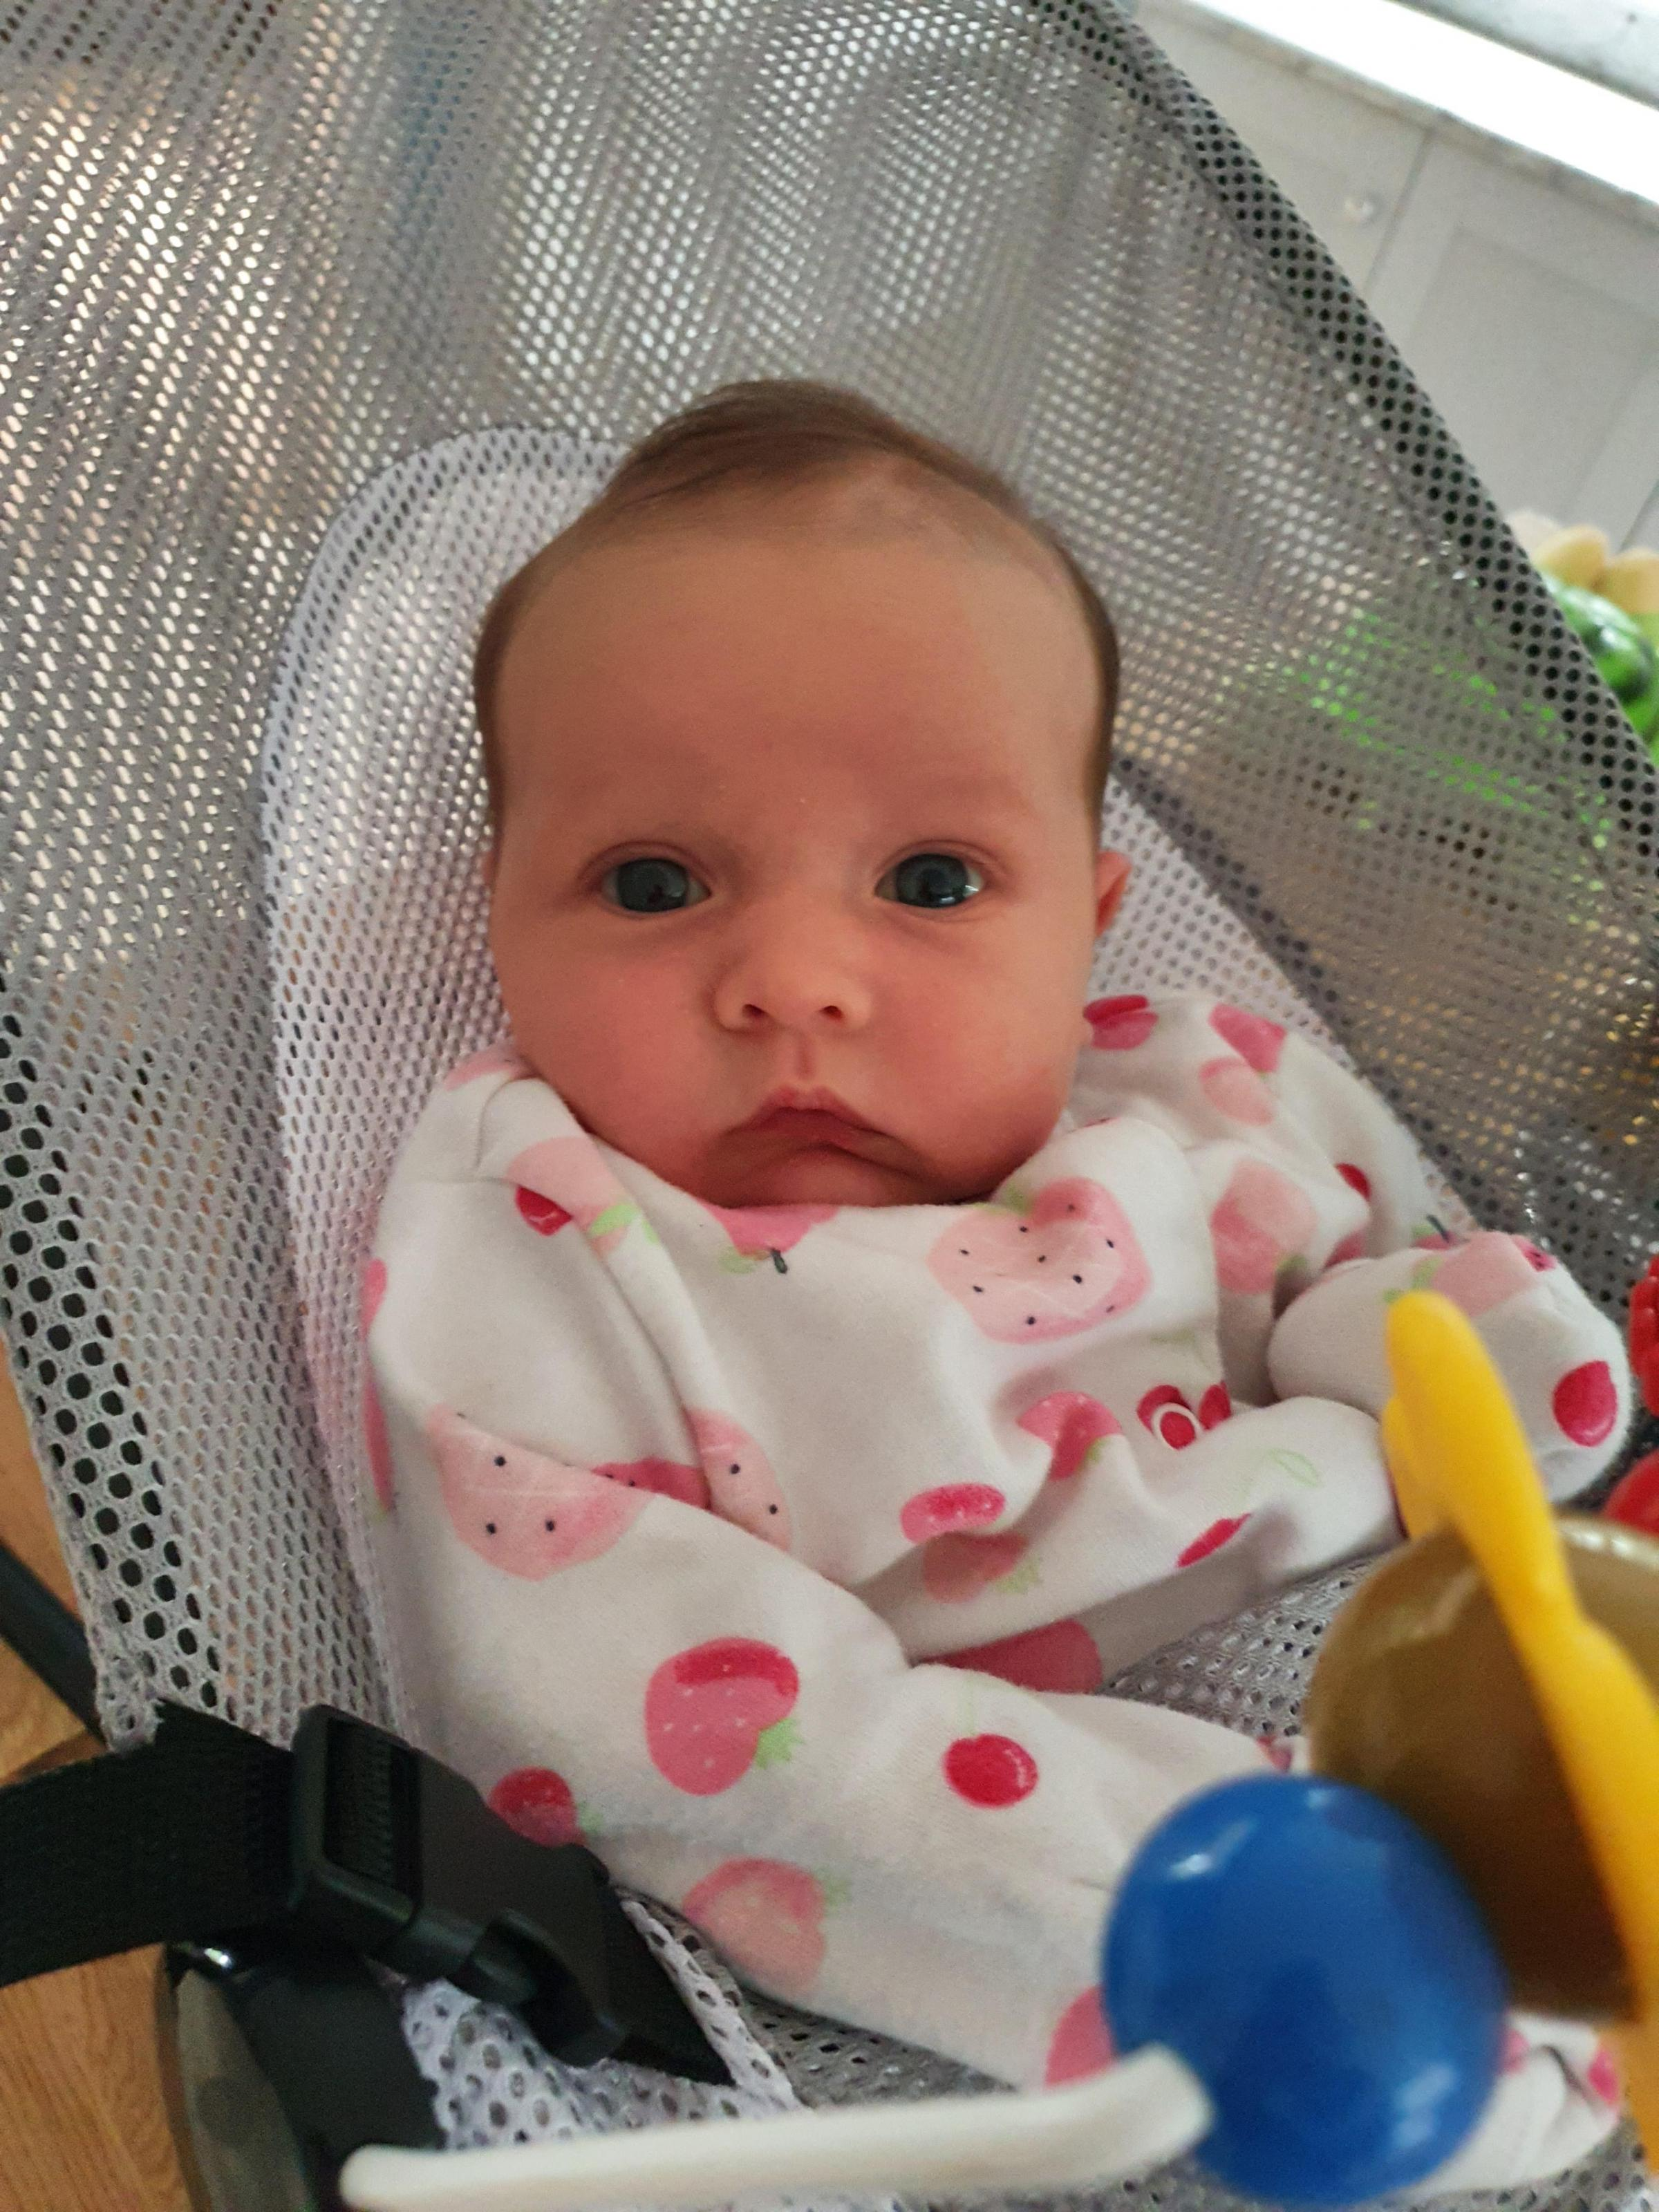 York Press: Ava Rey Rose Hall was born at York Hospital on August 29 to Heidi  and Michael Hall, of Holme Upon Spalding Moor, York. Here she is at  5 weeks old.